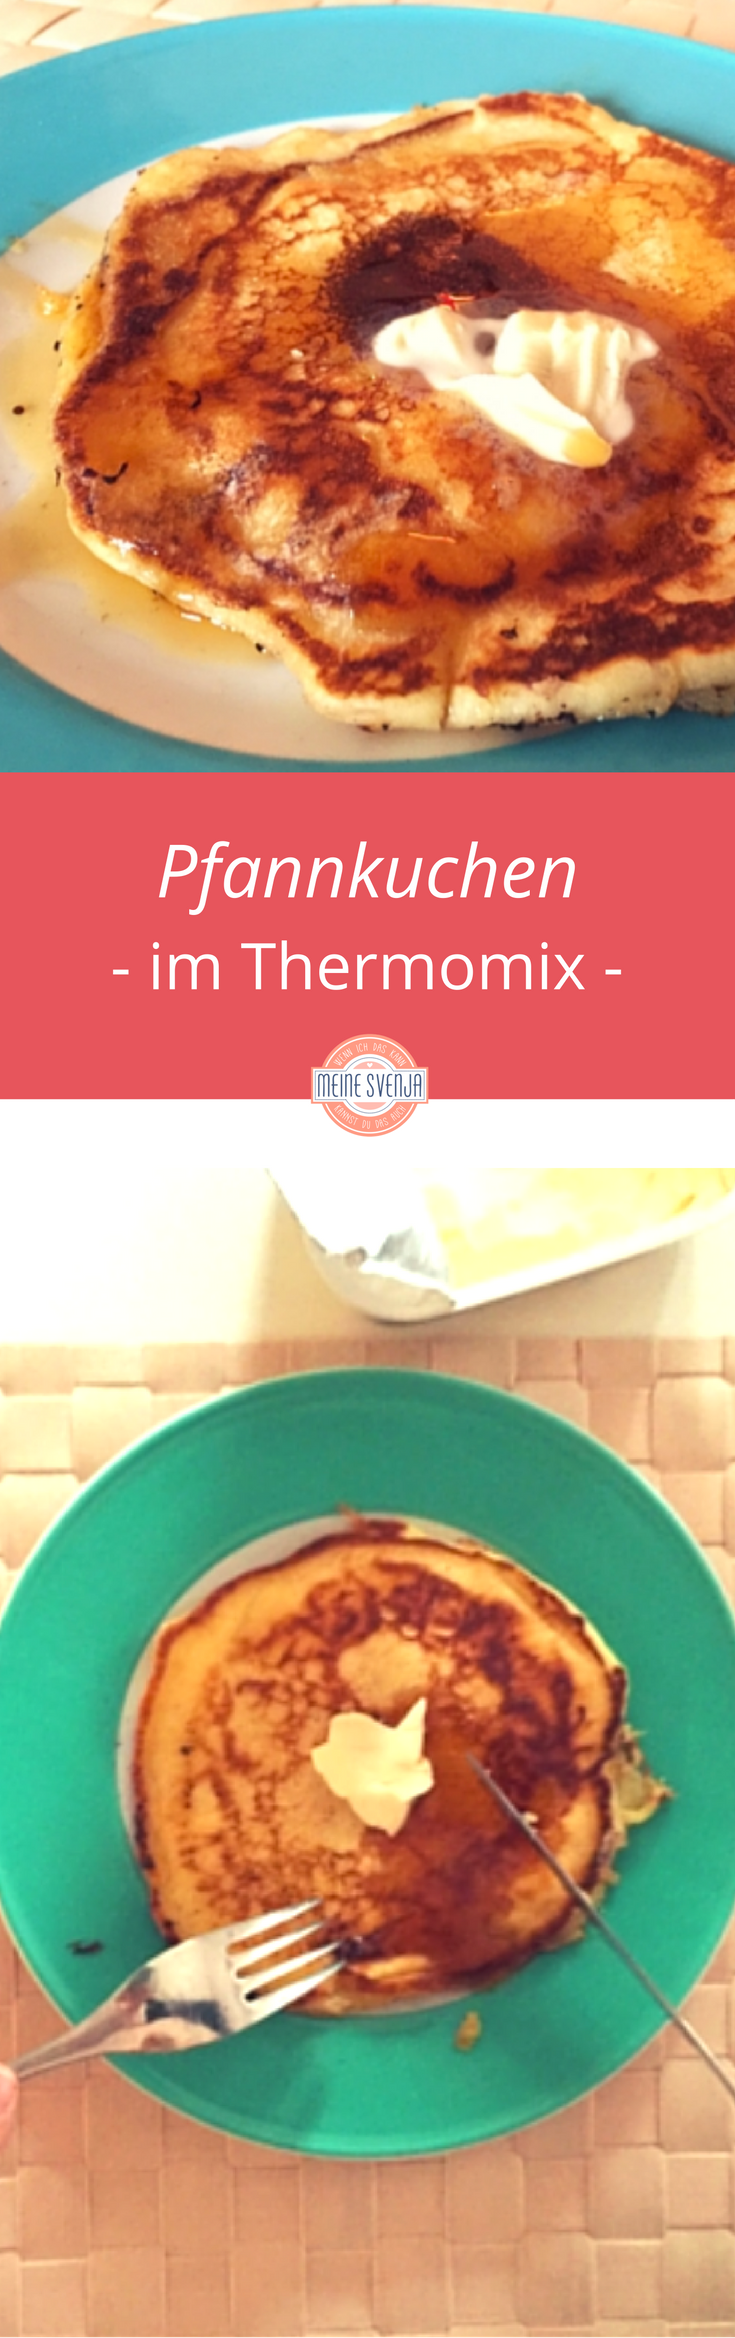 amerikanische pancakes unser adventsfr hst ckshit pinterest pfannkuchen thermomix. Black Bedroom Furniture Sets. Home Design Ideas